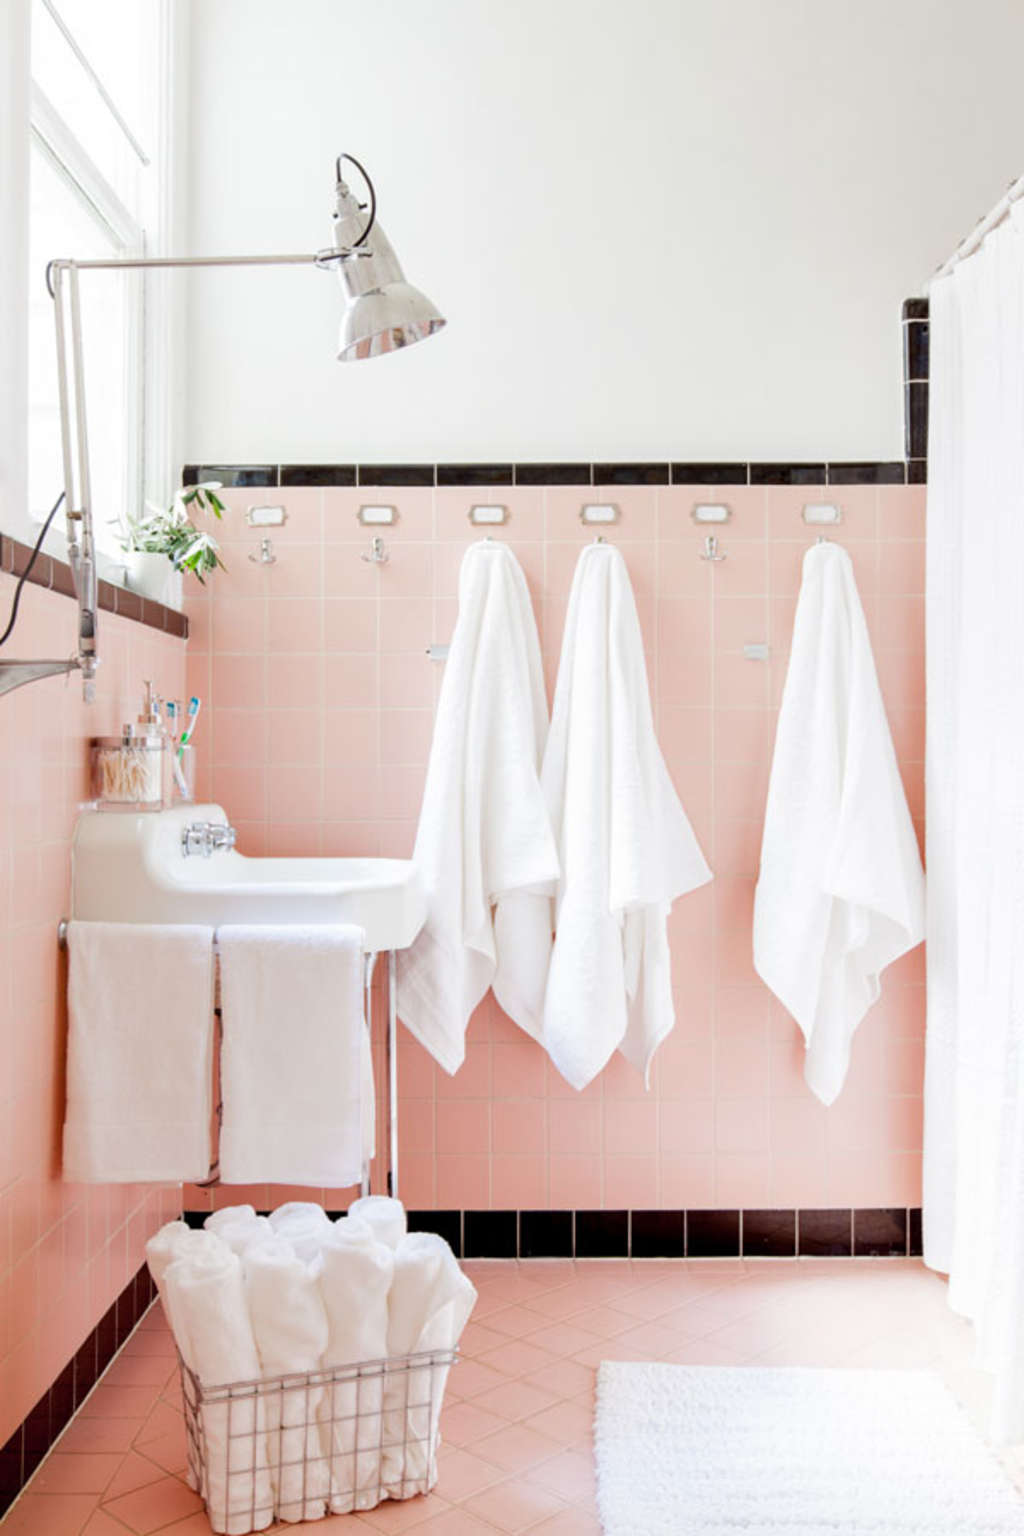 7 Ideas to Make a Dated, Tiled Bathroom Look New and Fresh